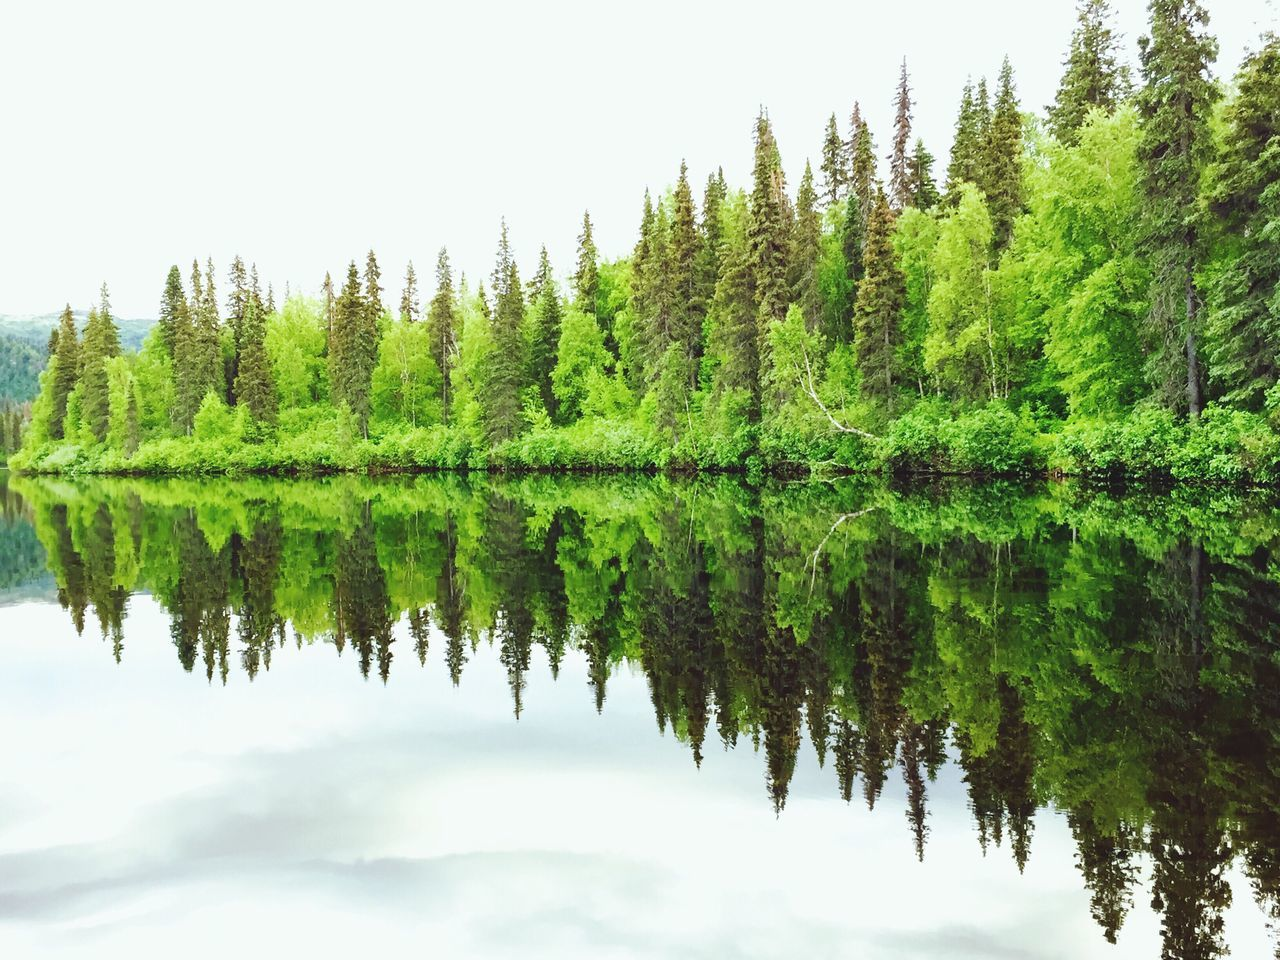 Reflection Of Trees In Calm Lake Against The Sky